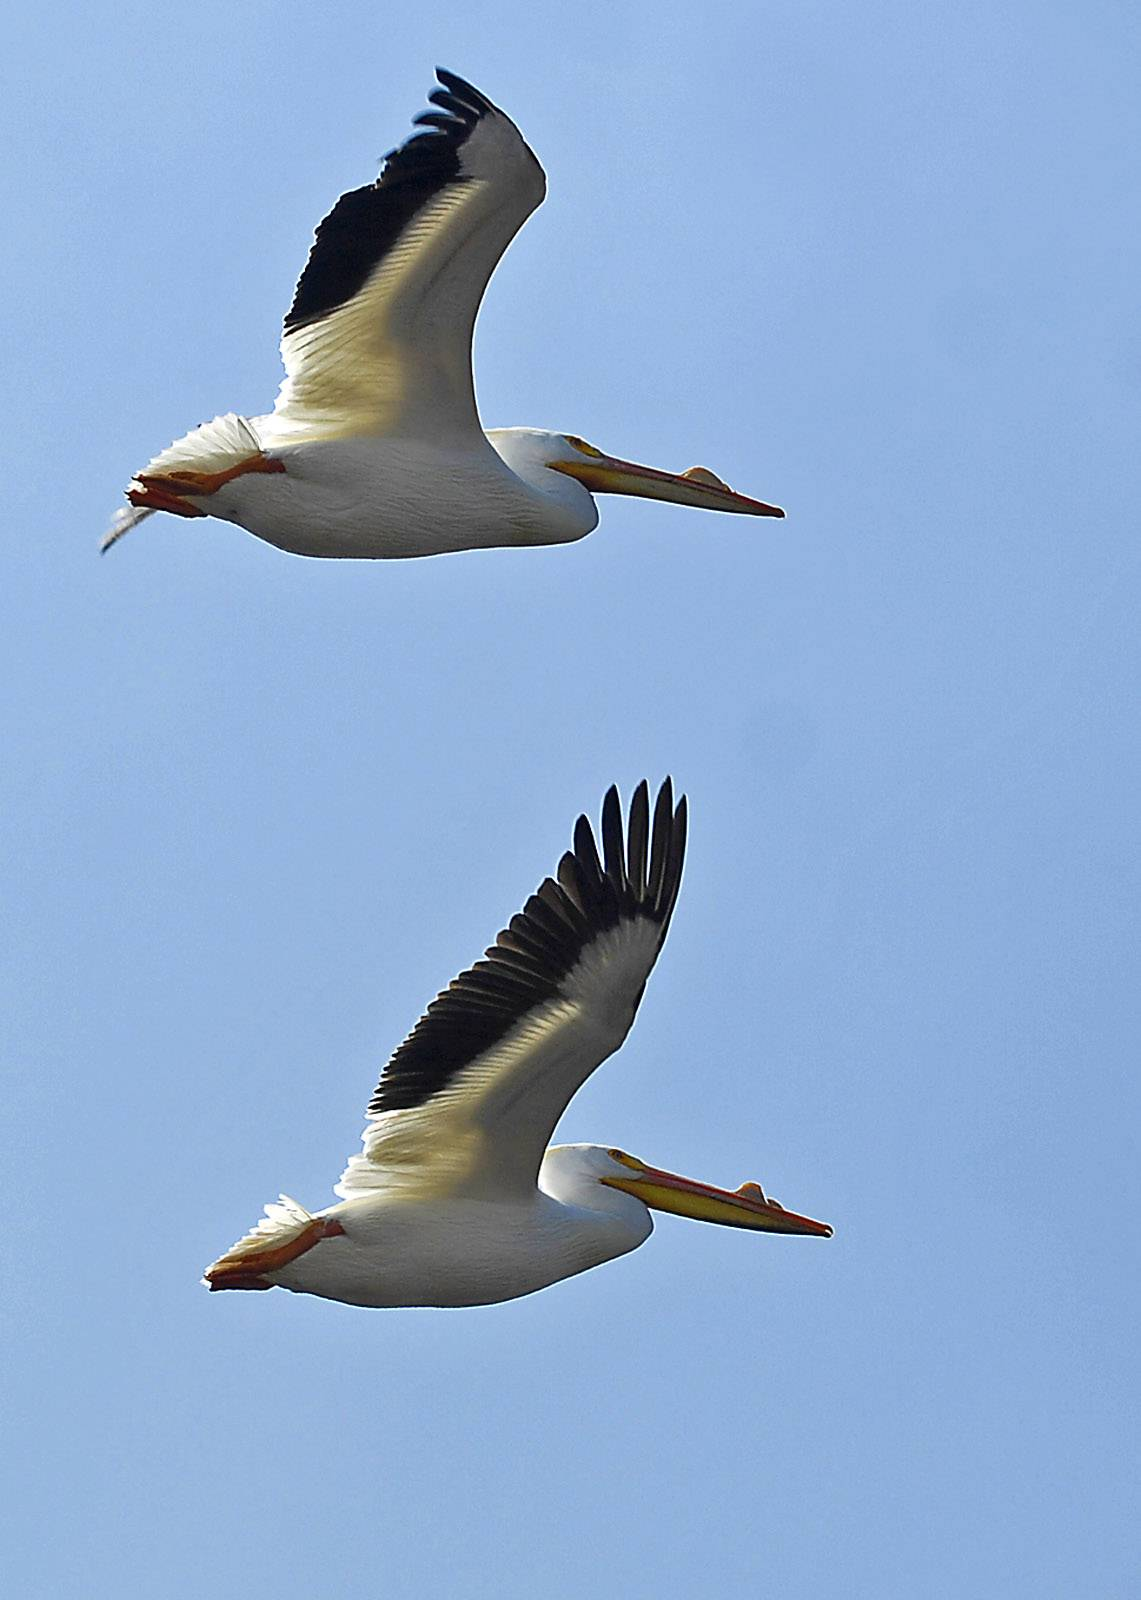 A pair of pelicans flies near Nelson Lake at the Dick Young Forest Preserve in Batavia. According to Valerie Blaine, pelicans have appeared in the spring for several years at this site. A reader wants to know when we can expect the pelicans to show up this year.